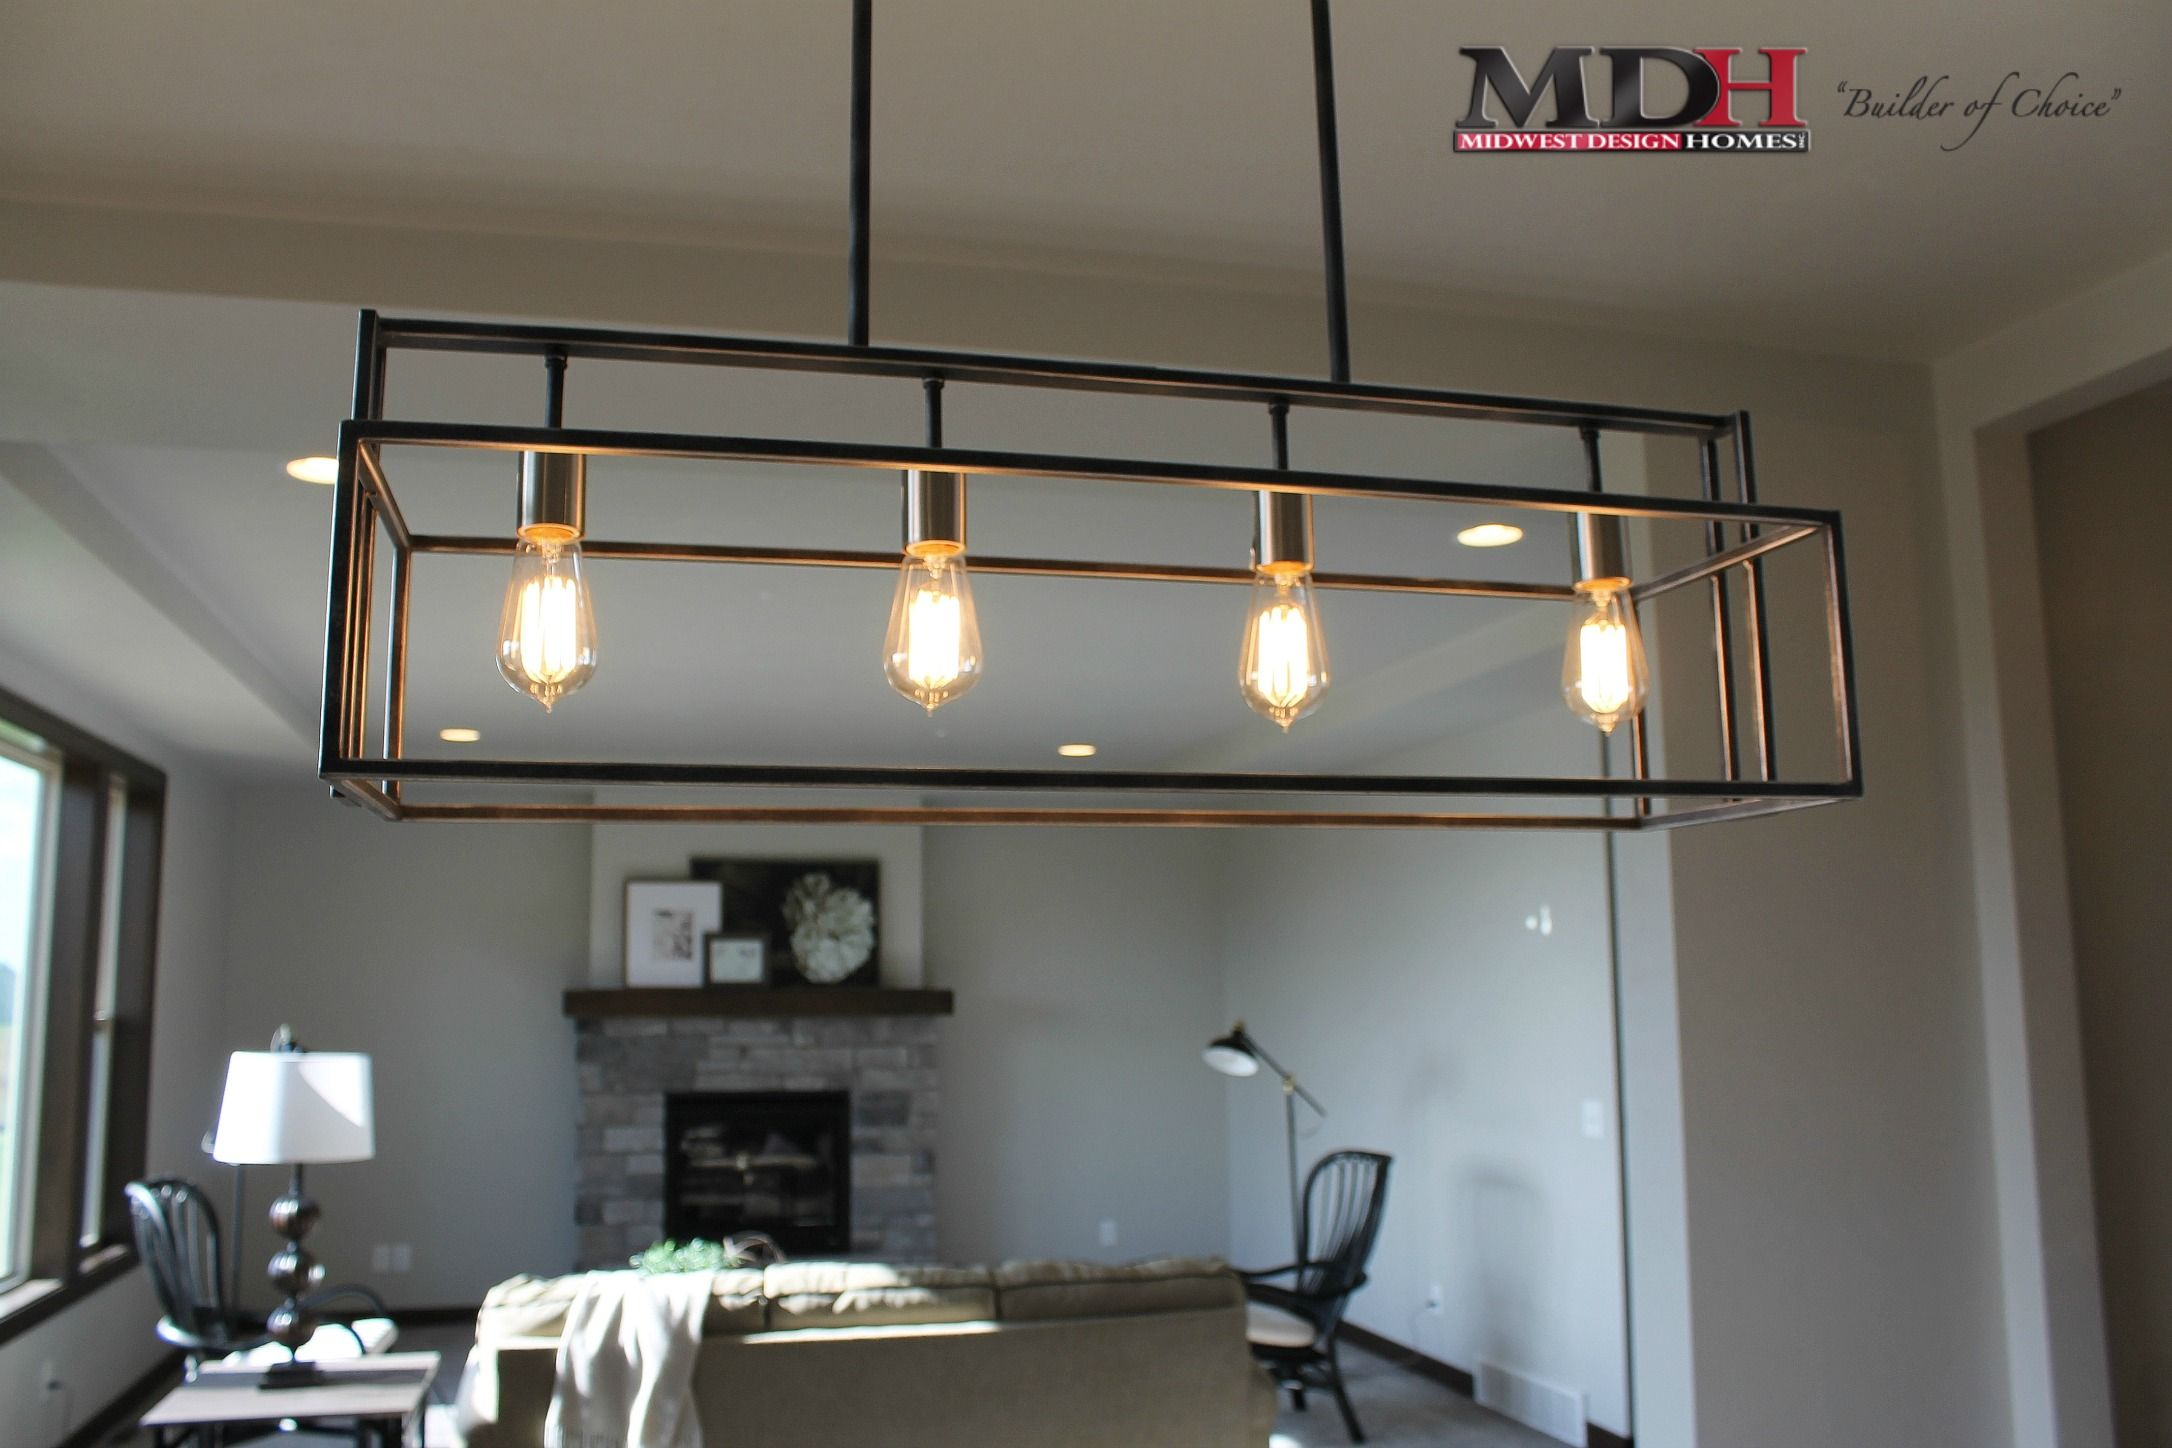 Pin By Midwest Design Homes On Mdh Featured Unique Lighting House Design New Home Builders Favorite Lighting